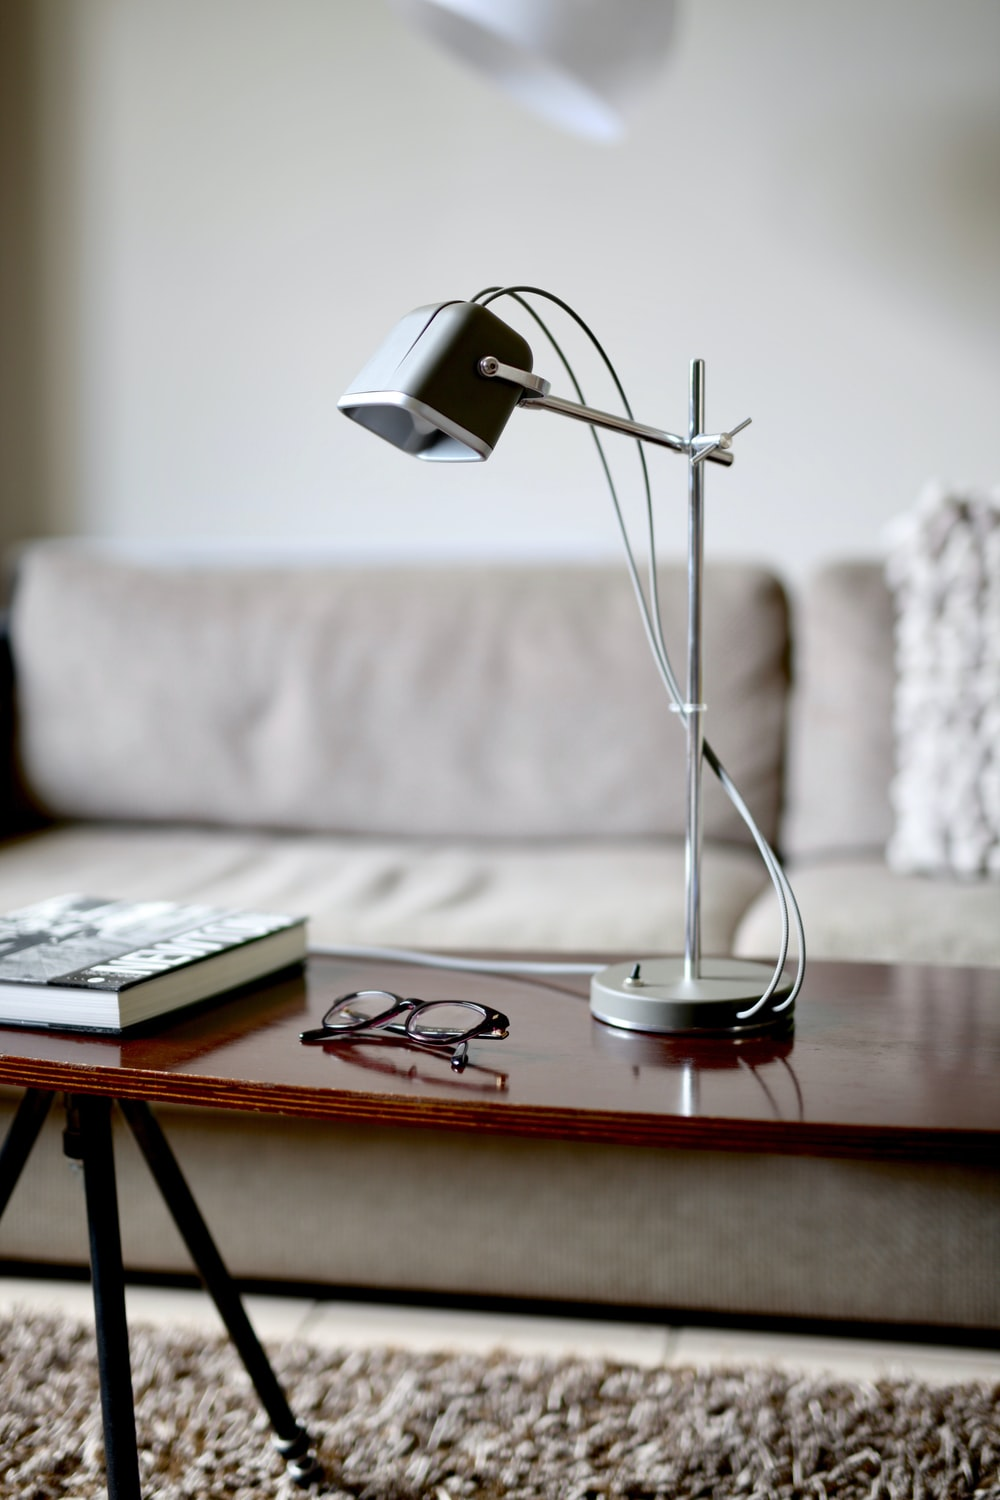 grey study lamp on table